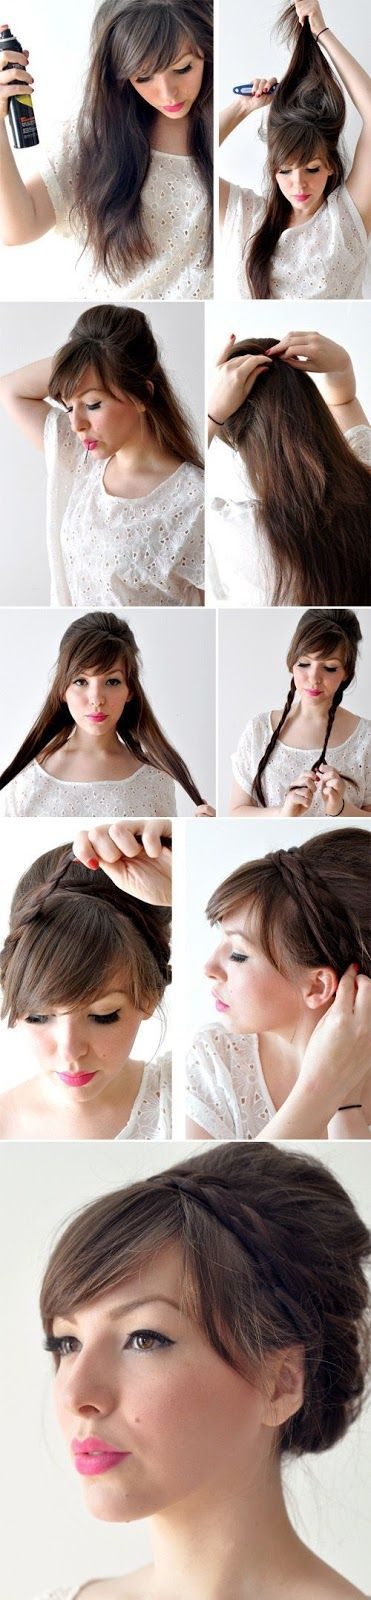 Fun and Fashion Blog: How to make a ladies hair style with styling spray...